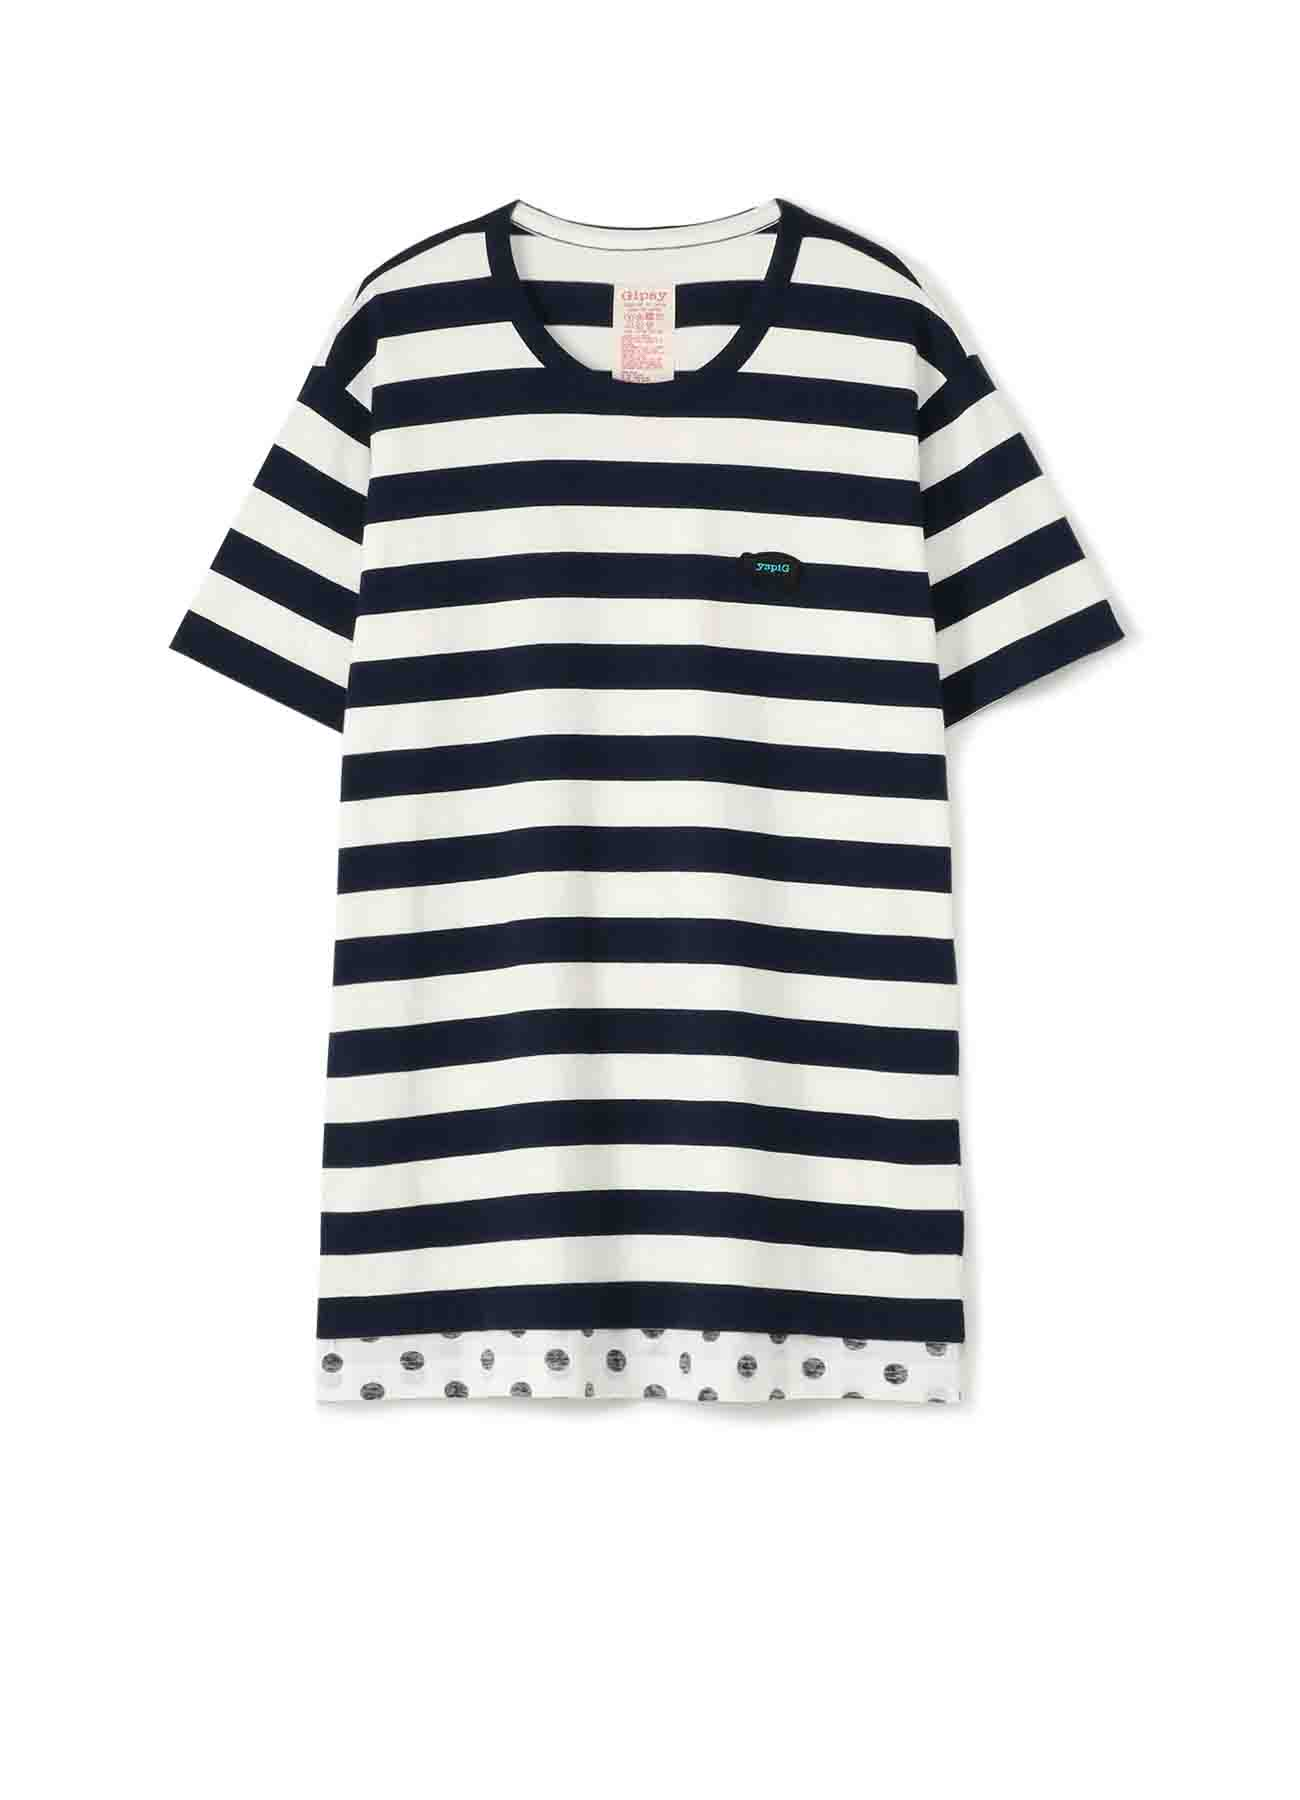 Gipsy THICK STRIPE SHORT SLEEVE T-SHIRT